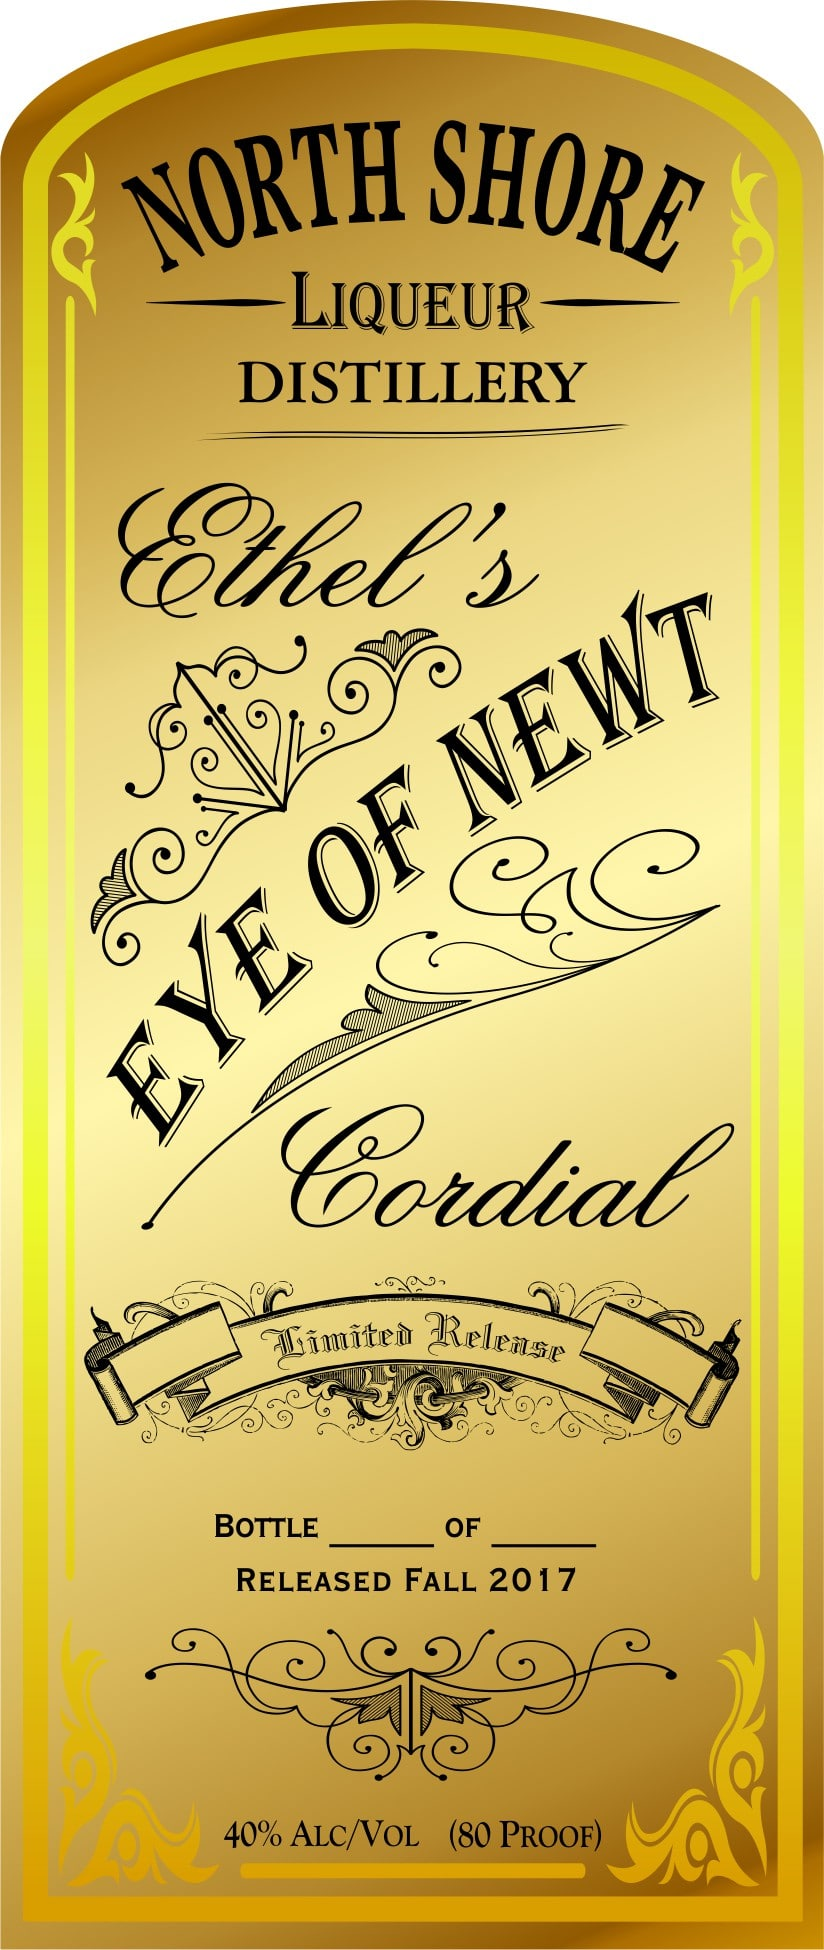 Ethel's Eye of Newt Cordial